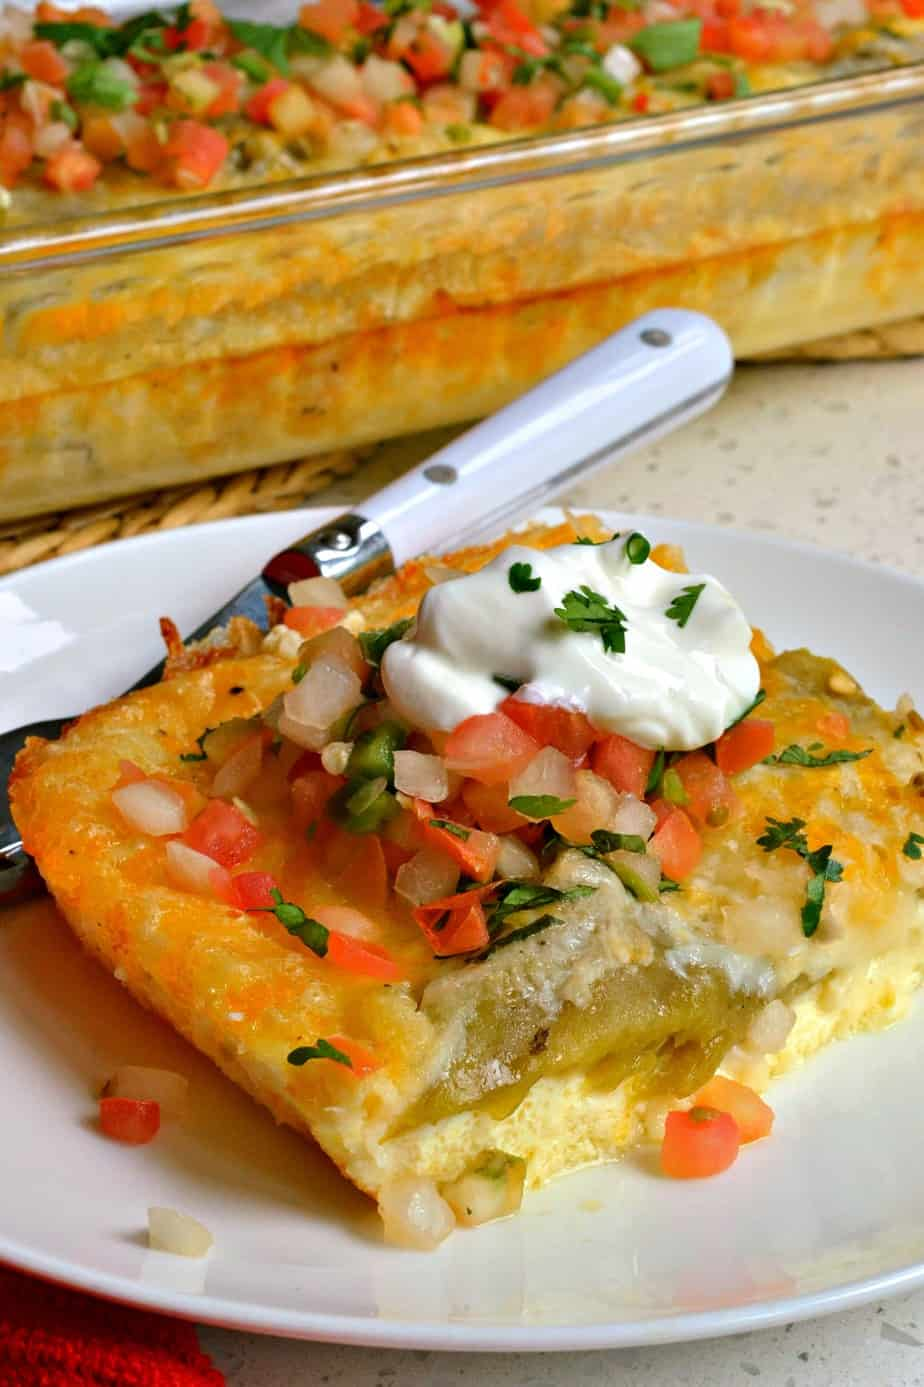 Egg and chile casserole piled high with pico de gallo and sour cream.